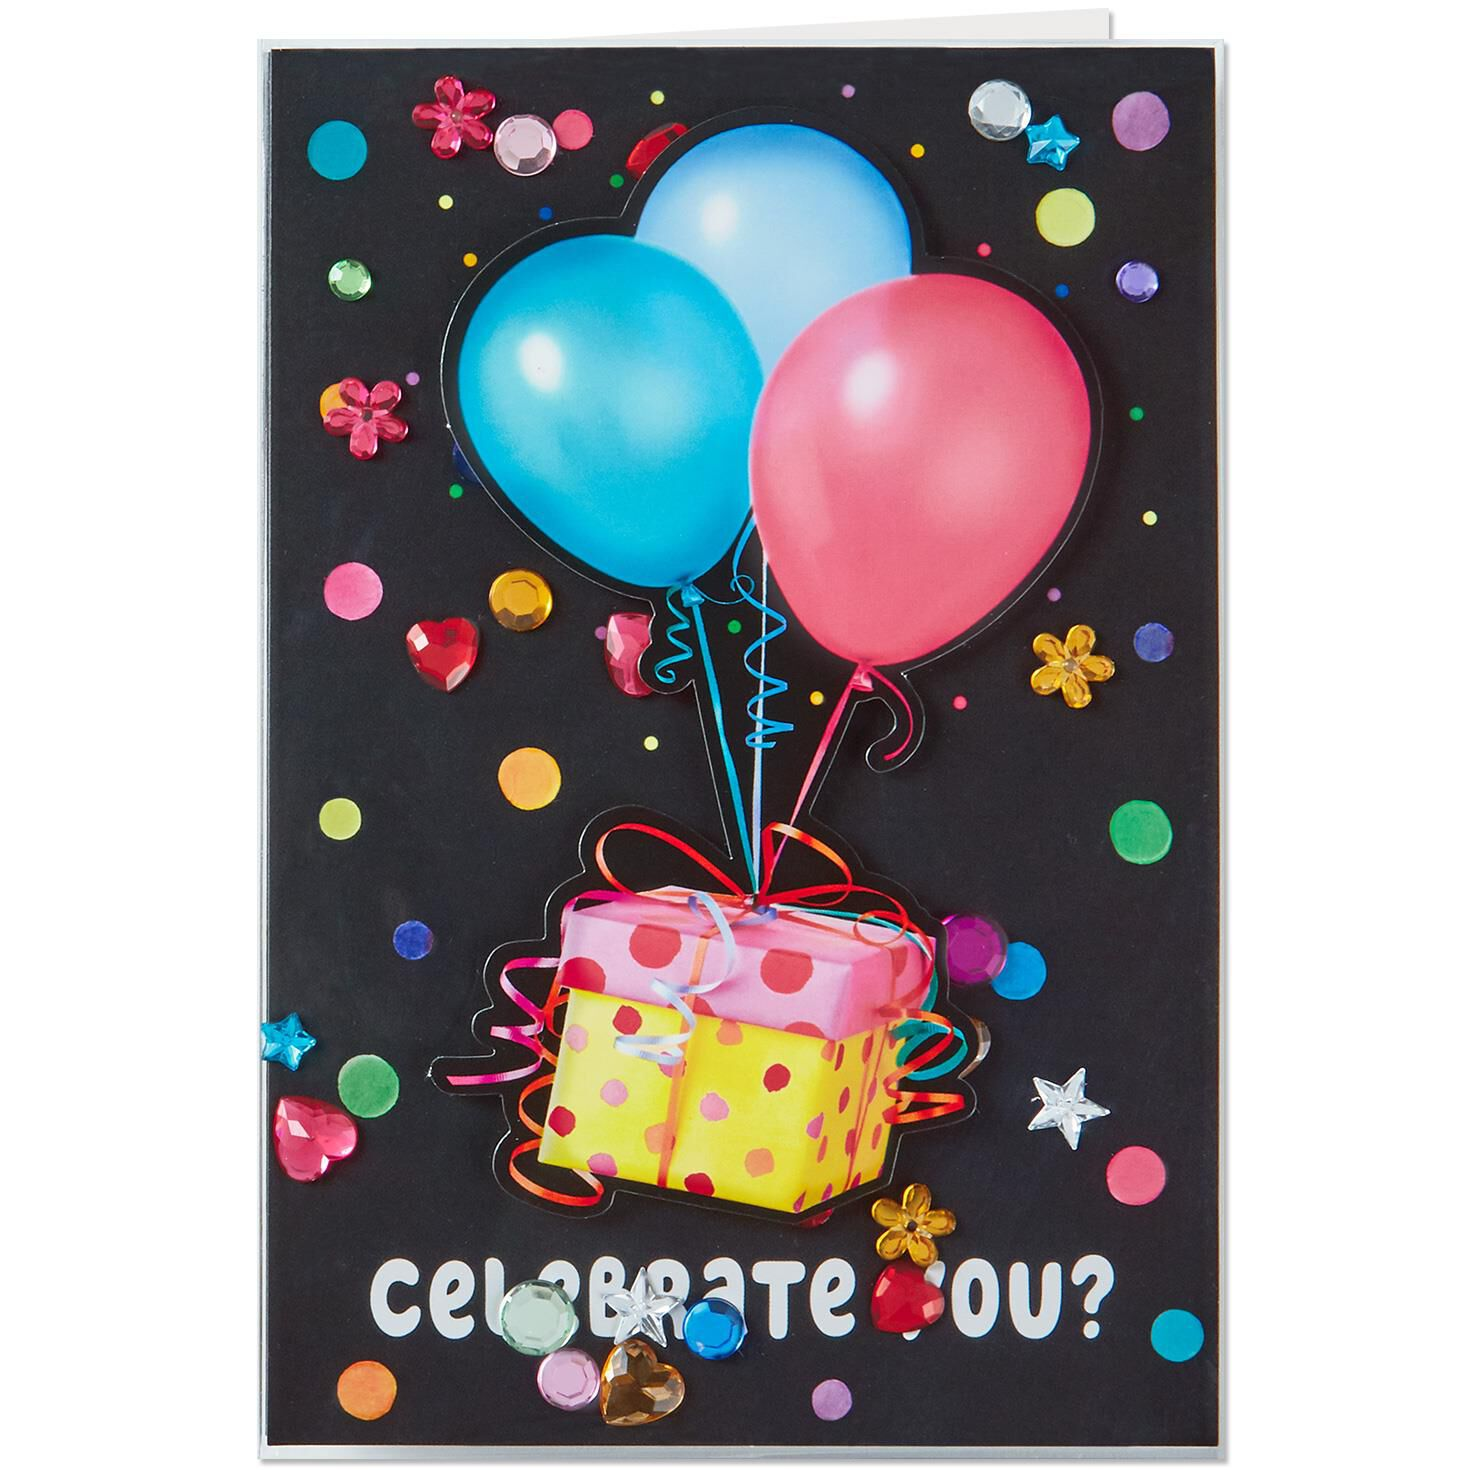 Time To Celebrate You Musical Birthday Card